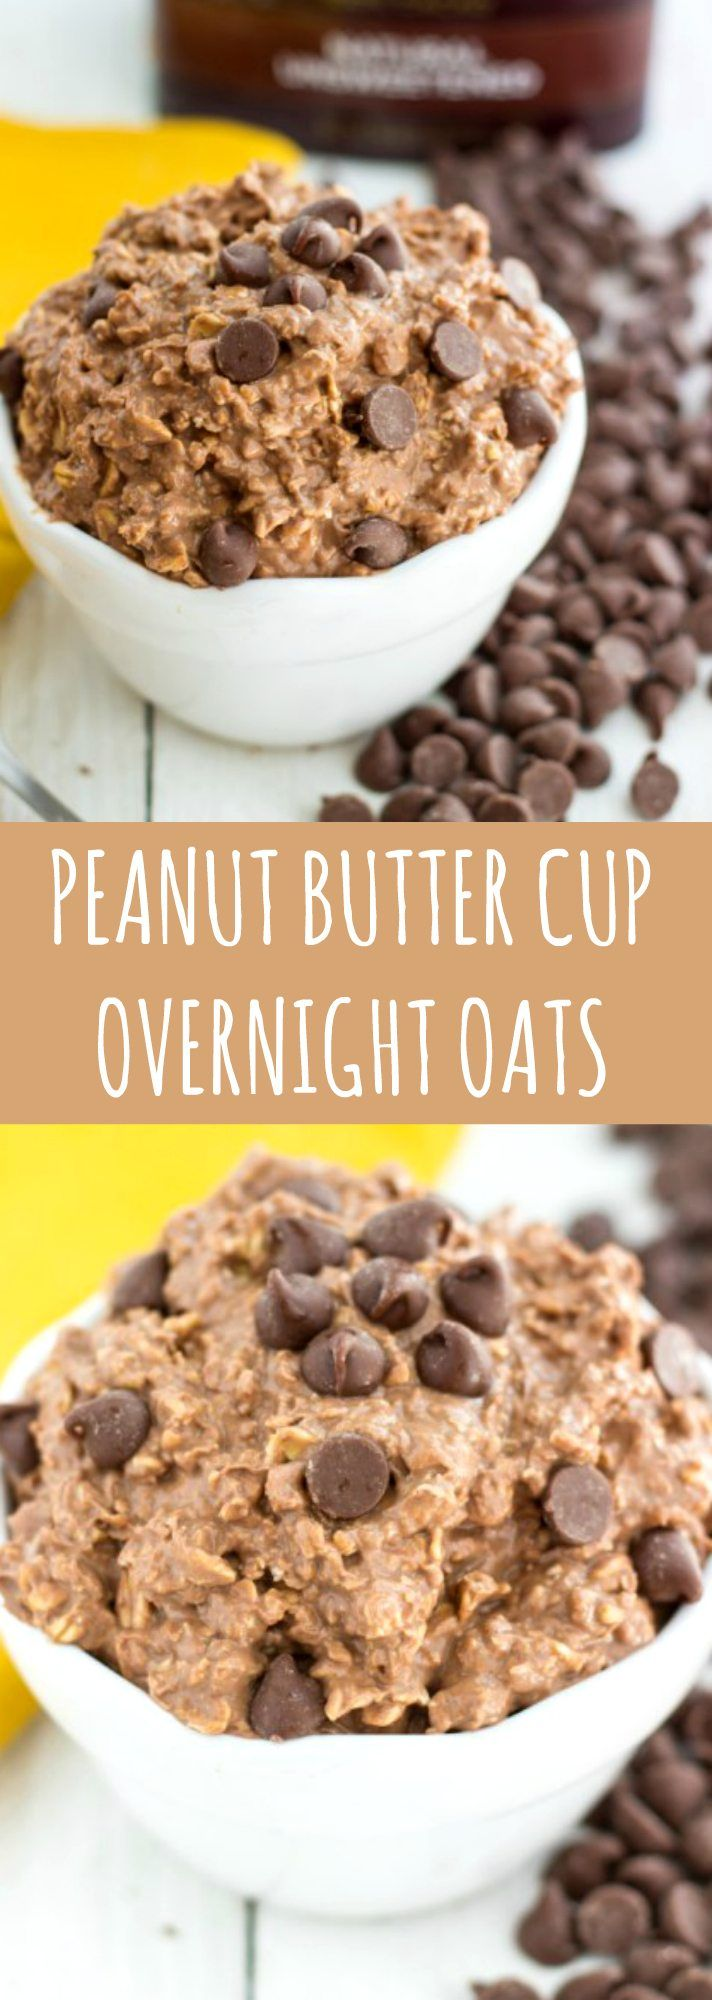 Peanut butter cup overnight oats. Used 1/2 cup cashew milk instead of milk/yogurt combo and used chocolate protein powder instead of cocoa.